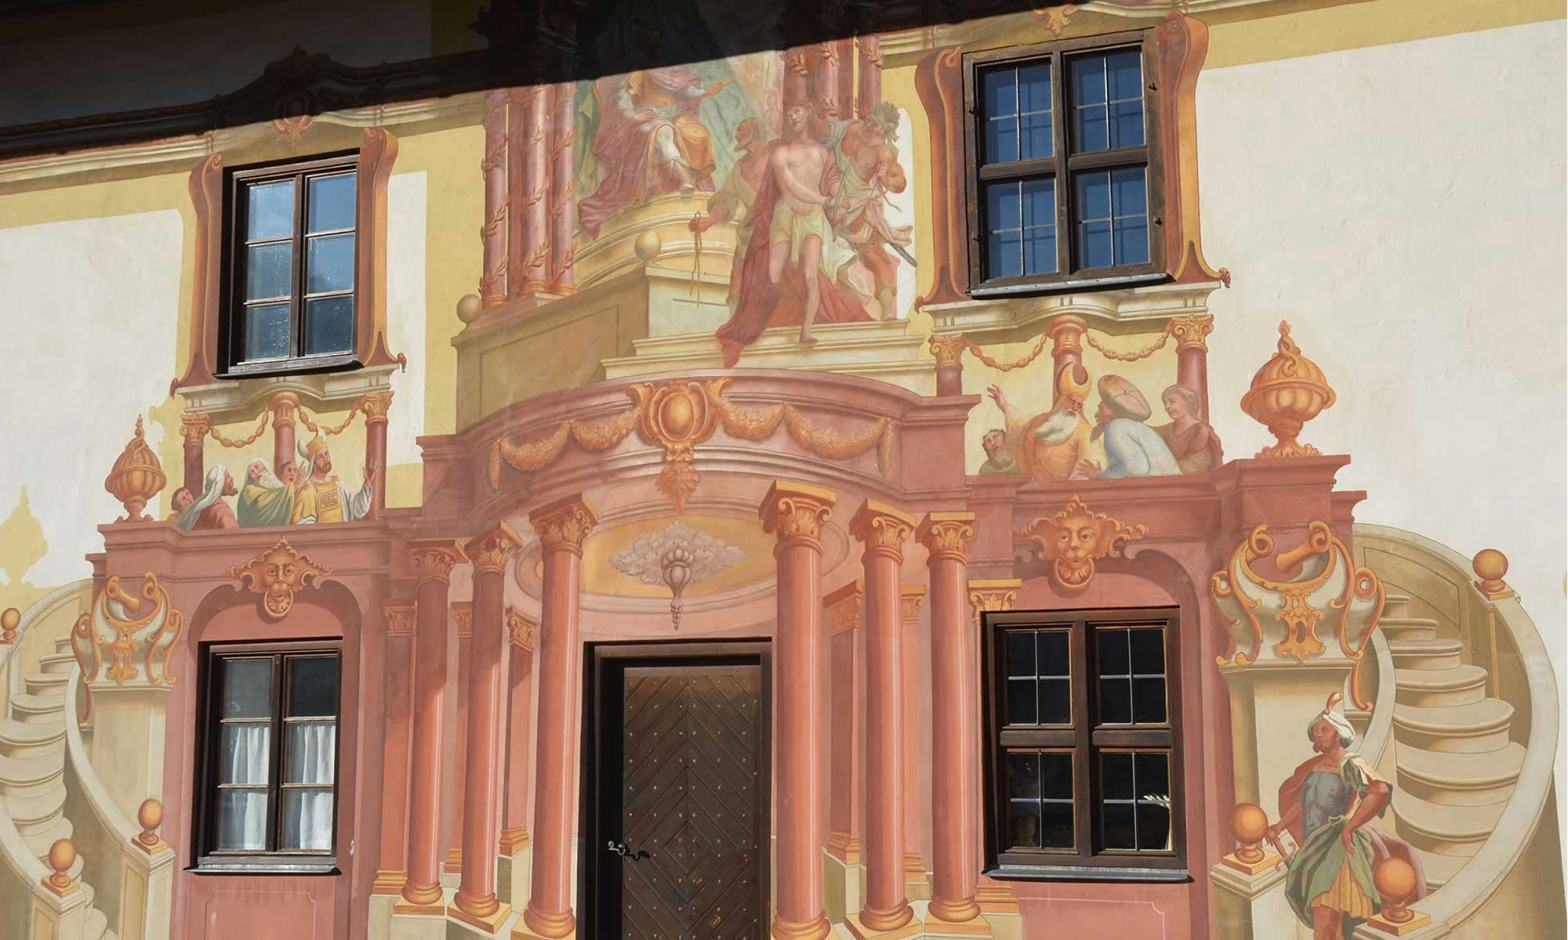 The colorful, fresco-painted facade of the Pilatushaus